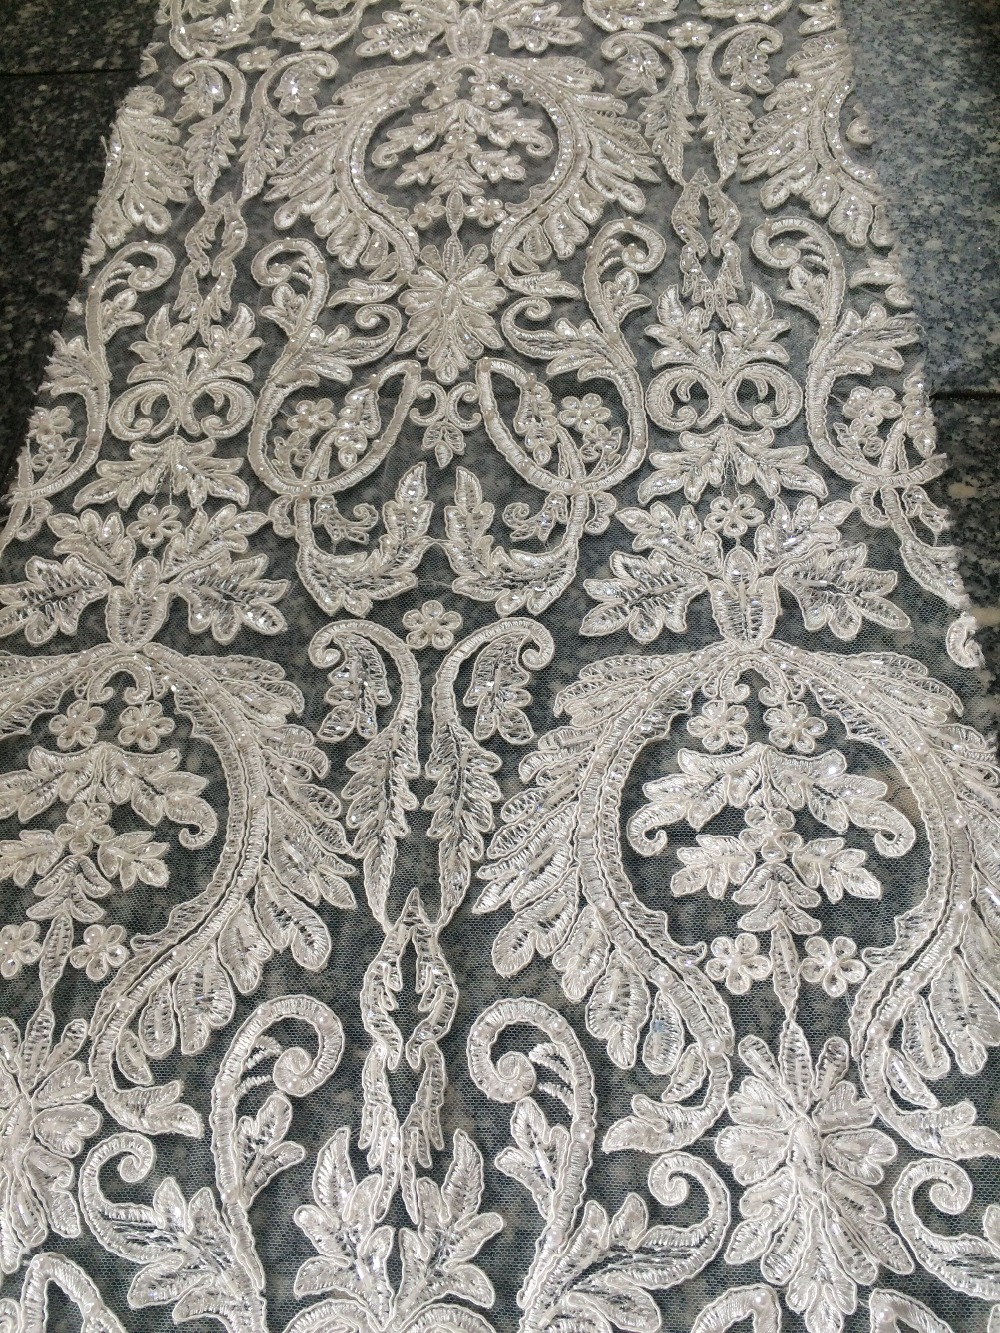 Z han32119 Free shipping nice African nigerian lace fabric 5yards/lot for party & wedding dress-in Lace from Home & Garden    1